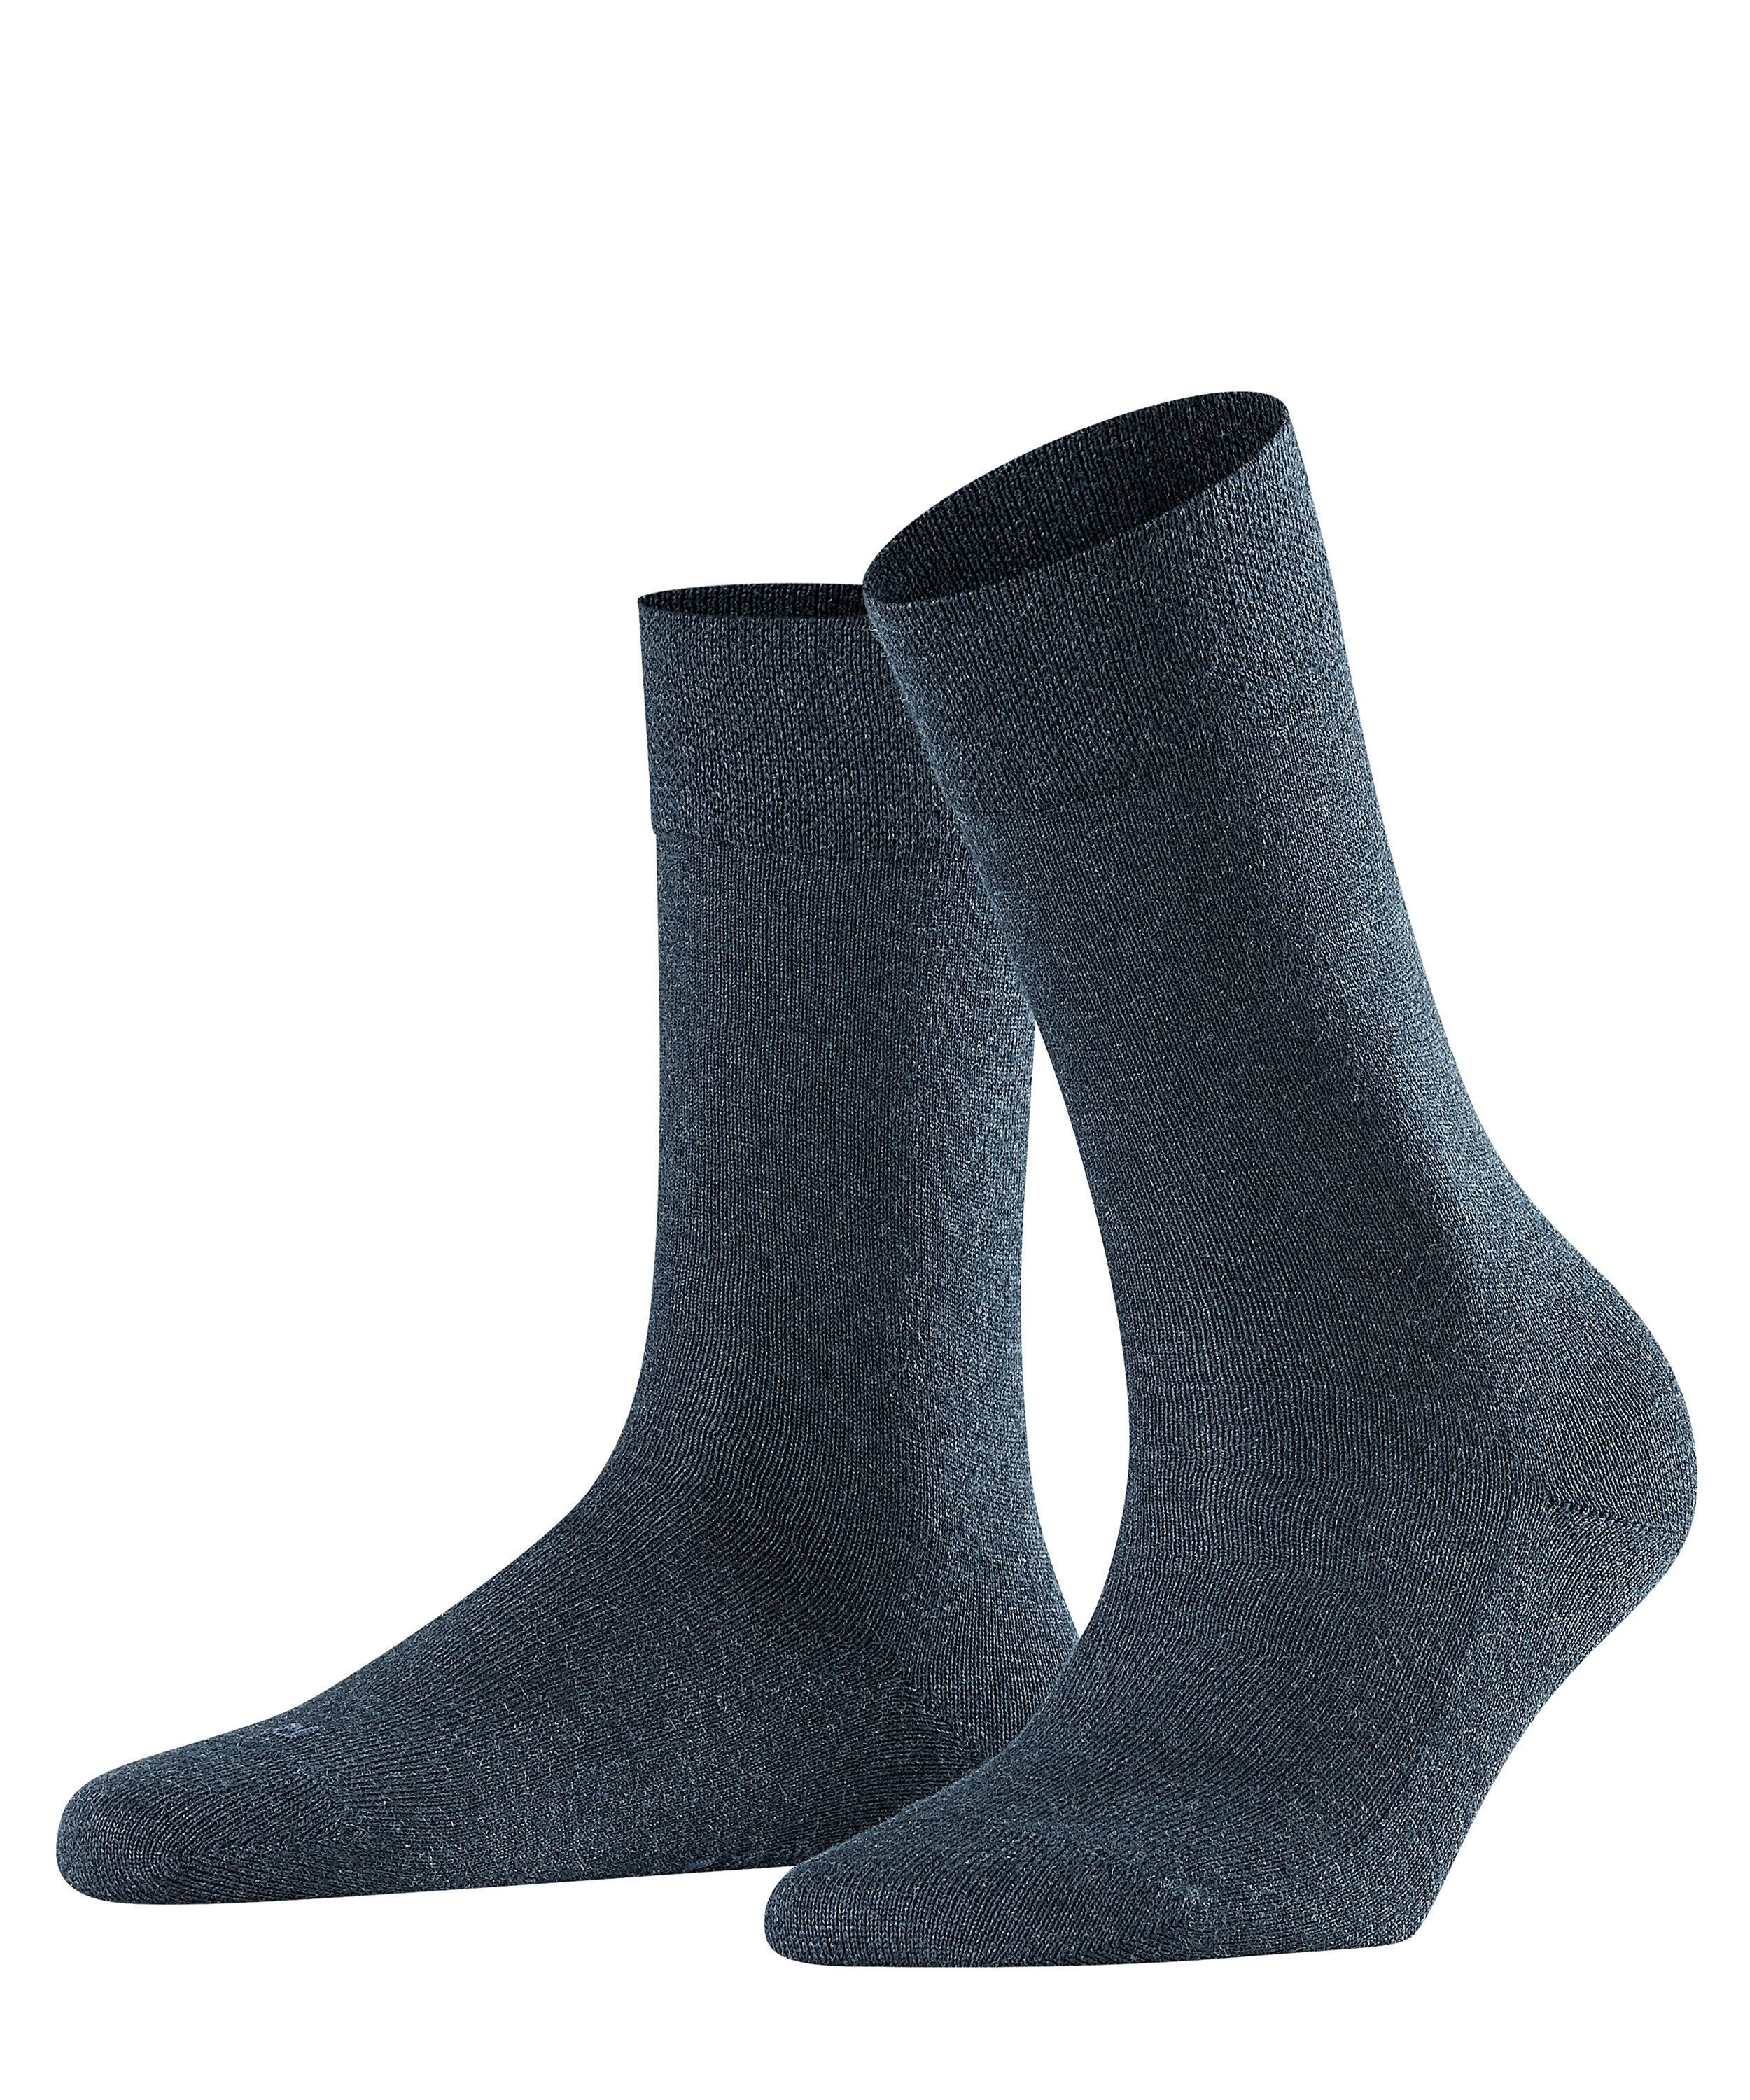 Chaussette Sensitive de Falke